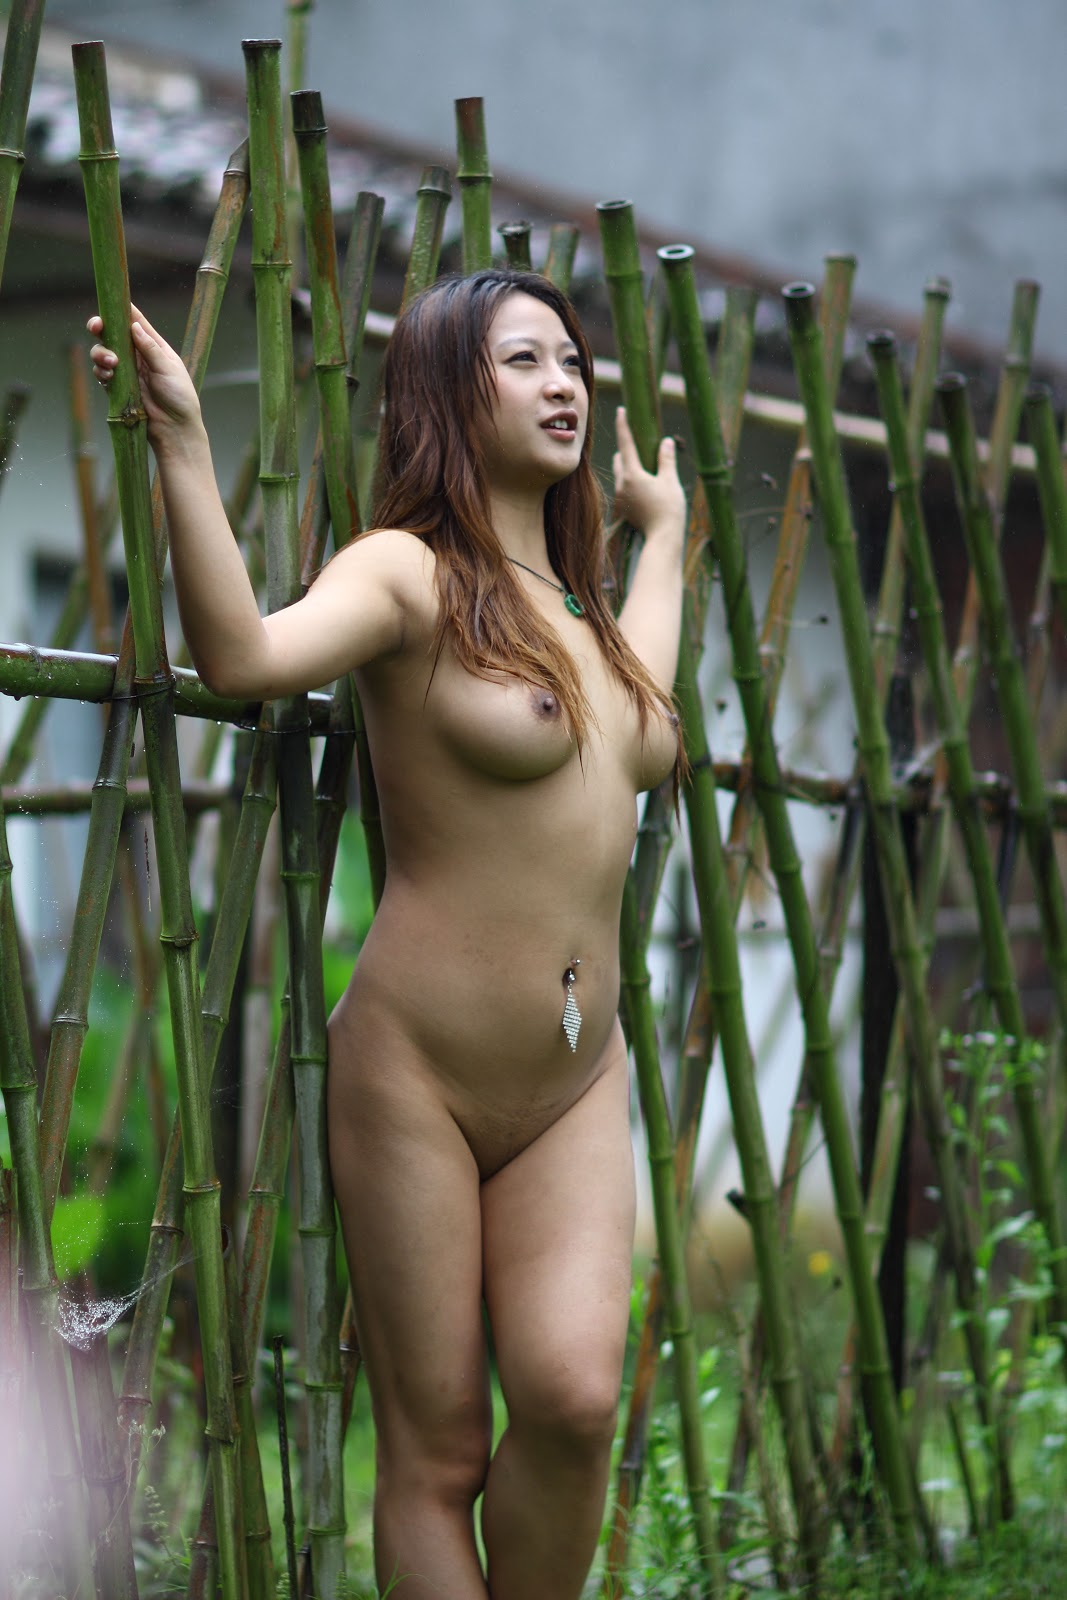 Chinese_Nude_Art_Photos_-_292_-_YouXuan_Vol_2.rar.IMG_3177 Chinese Nude_Art_Photos_-_292_-_YouXuan_Vol_2.rar